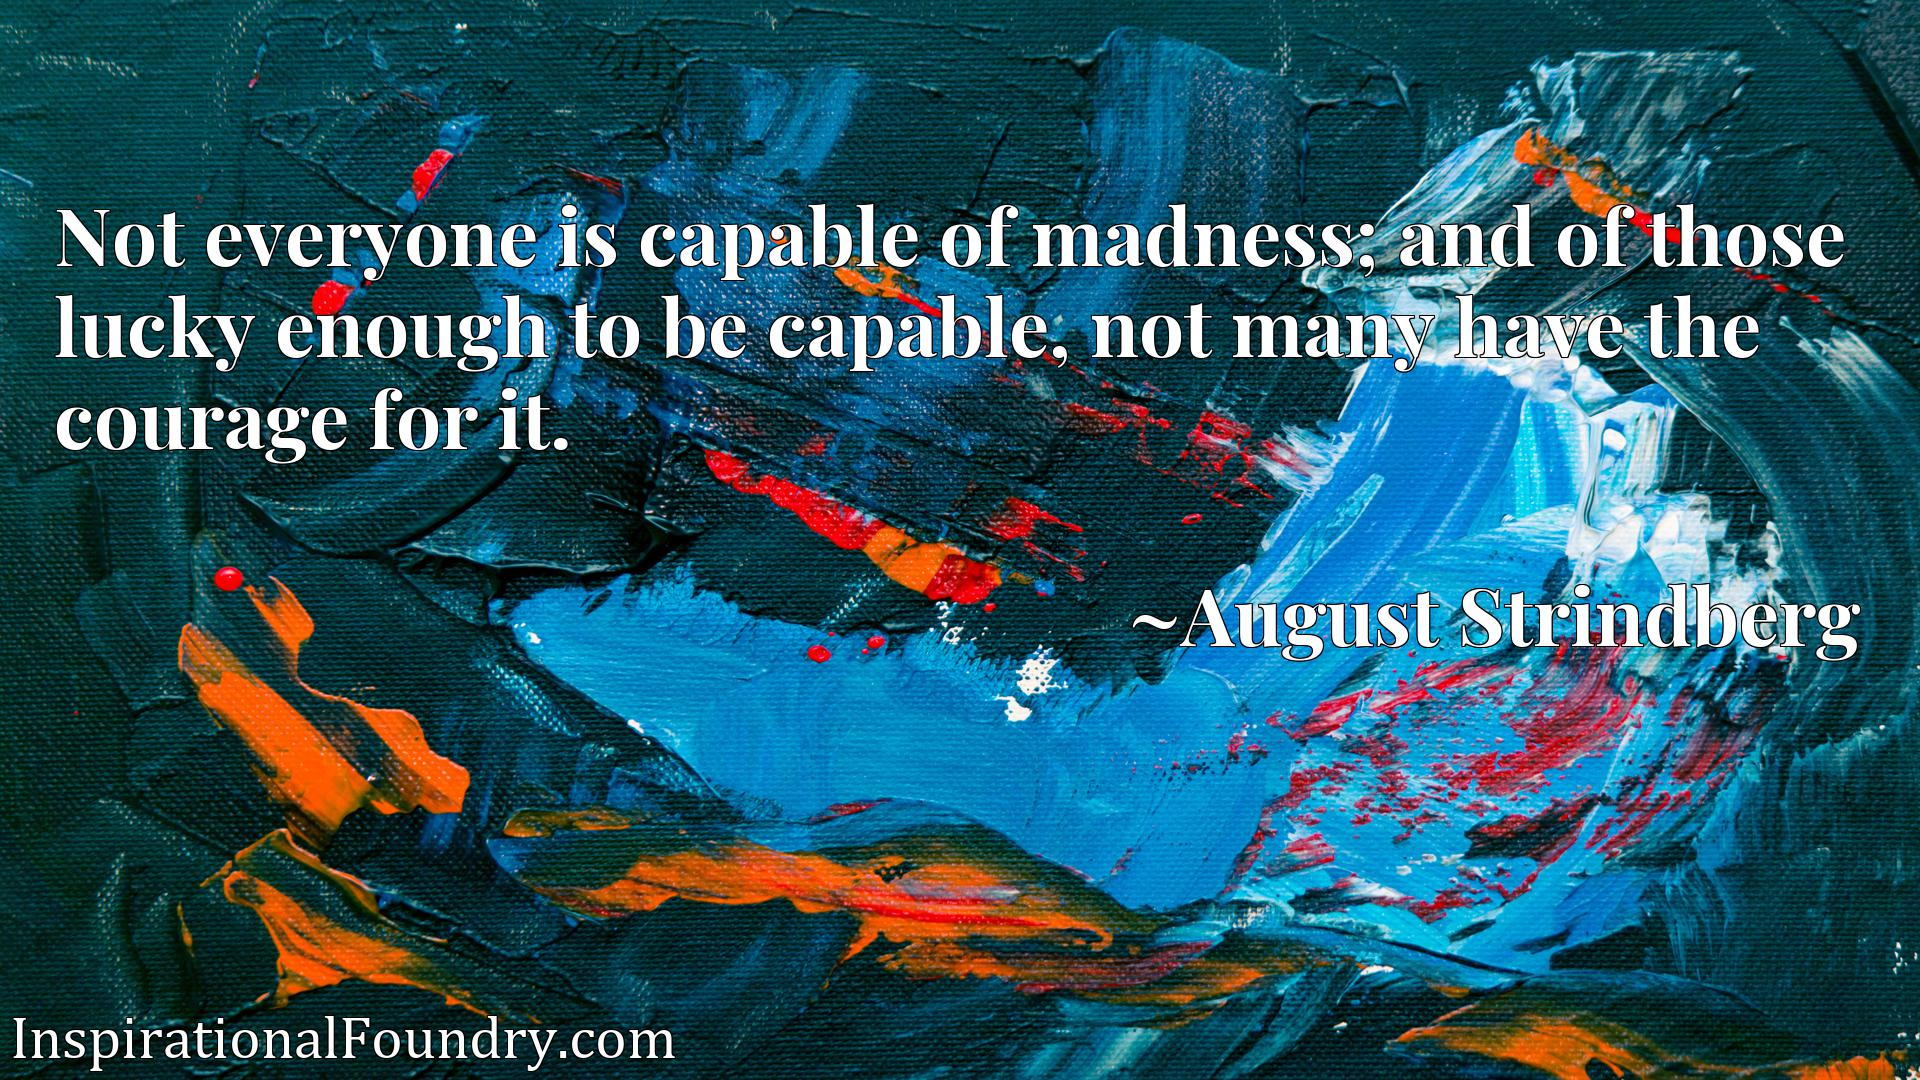 Not everyone is capable of madness; and of those lucky enough to be capable, not many have the courage for it.